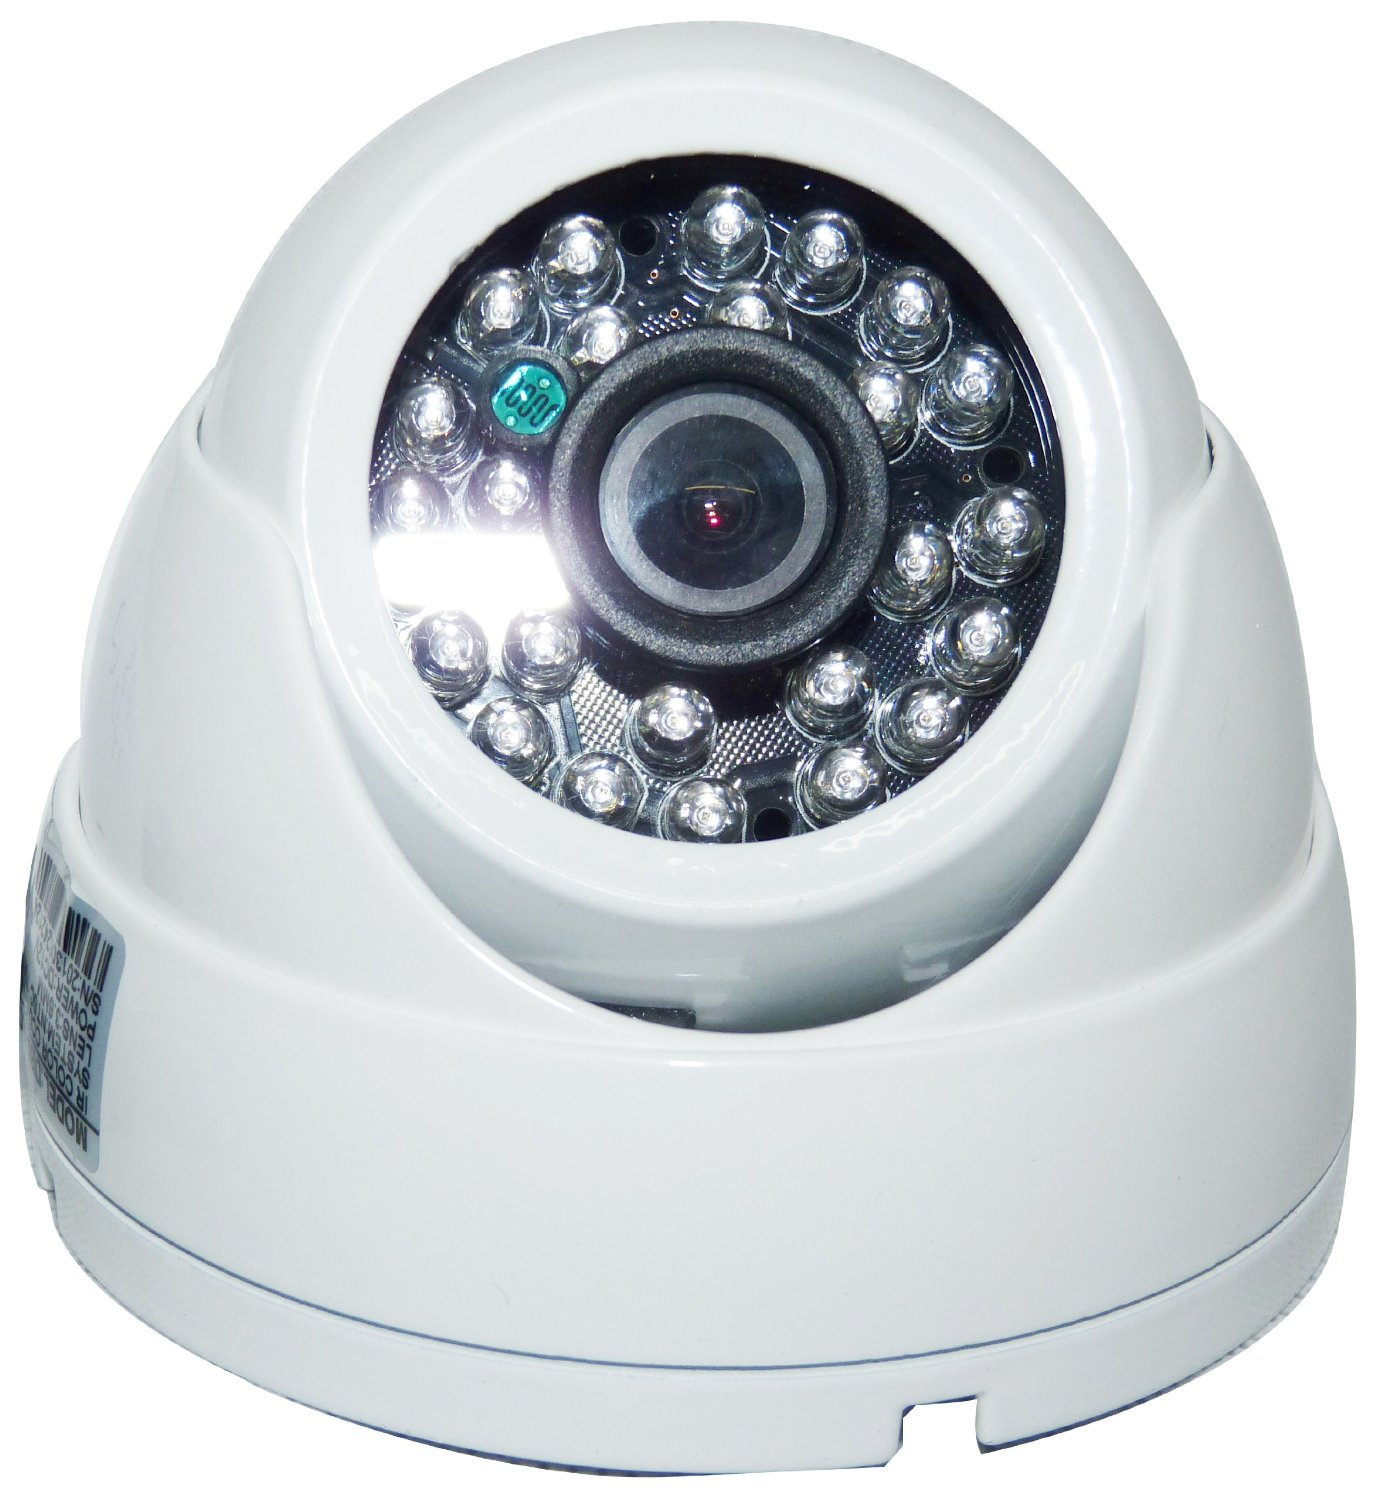 DBS 740W - 700TVL CCTV Dome Security Camera - 1/3'' Sony Super HAD CCD II